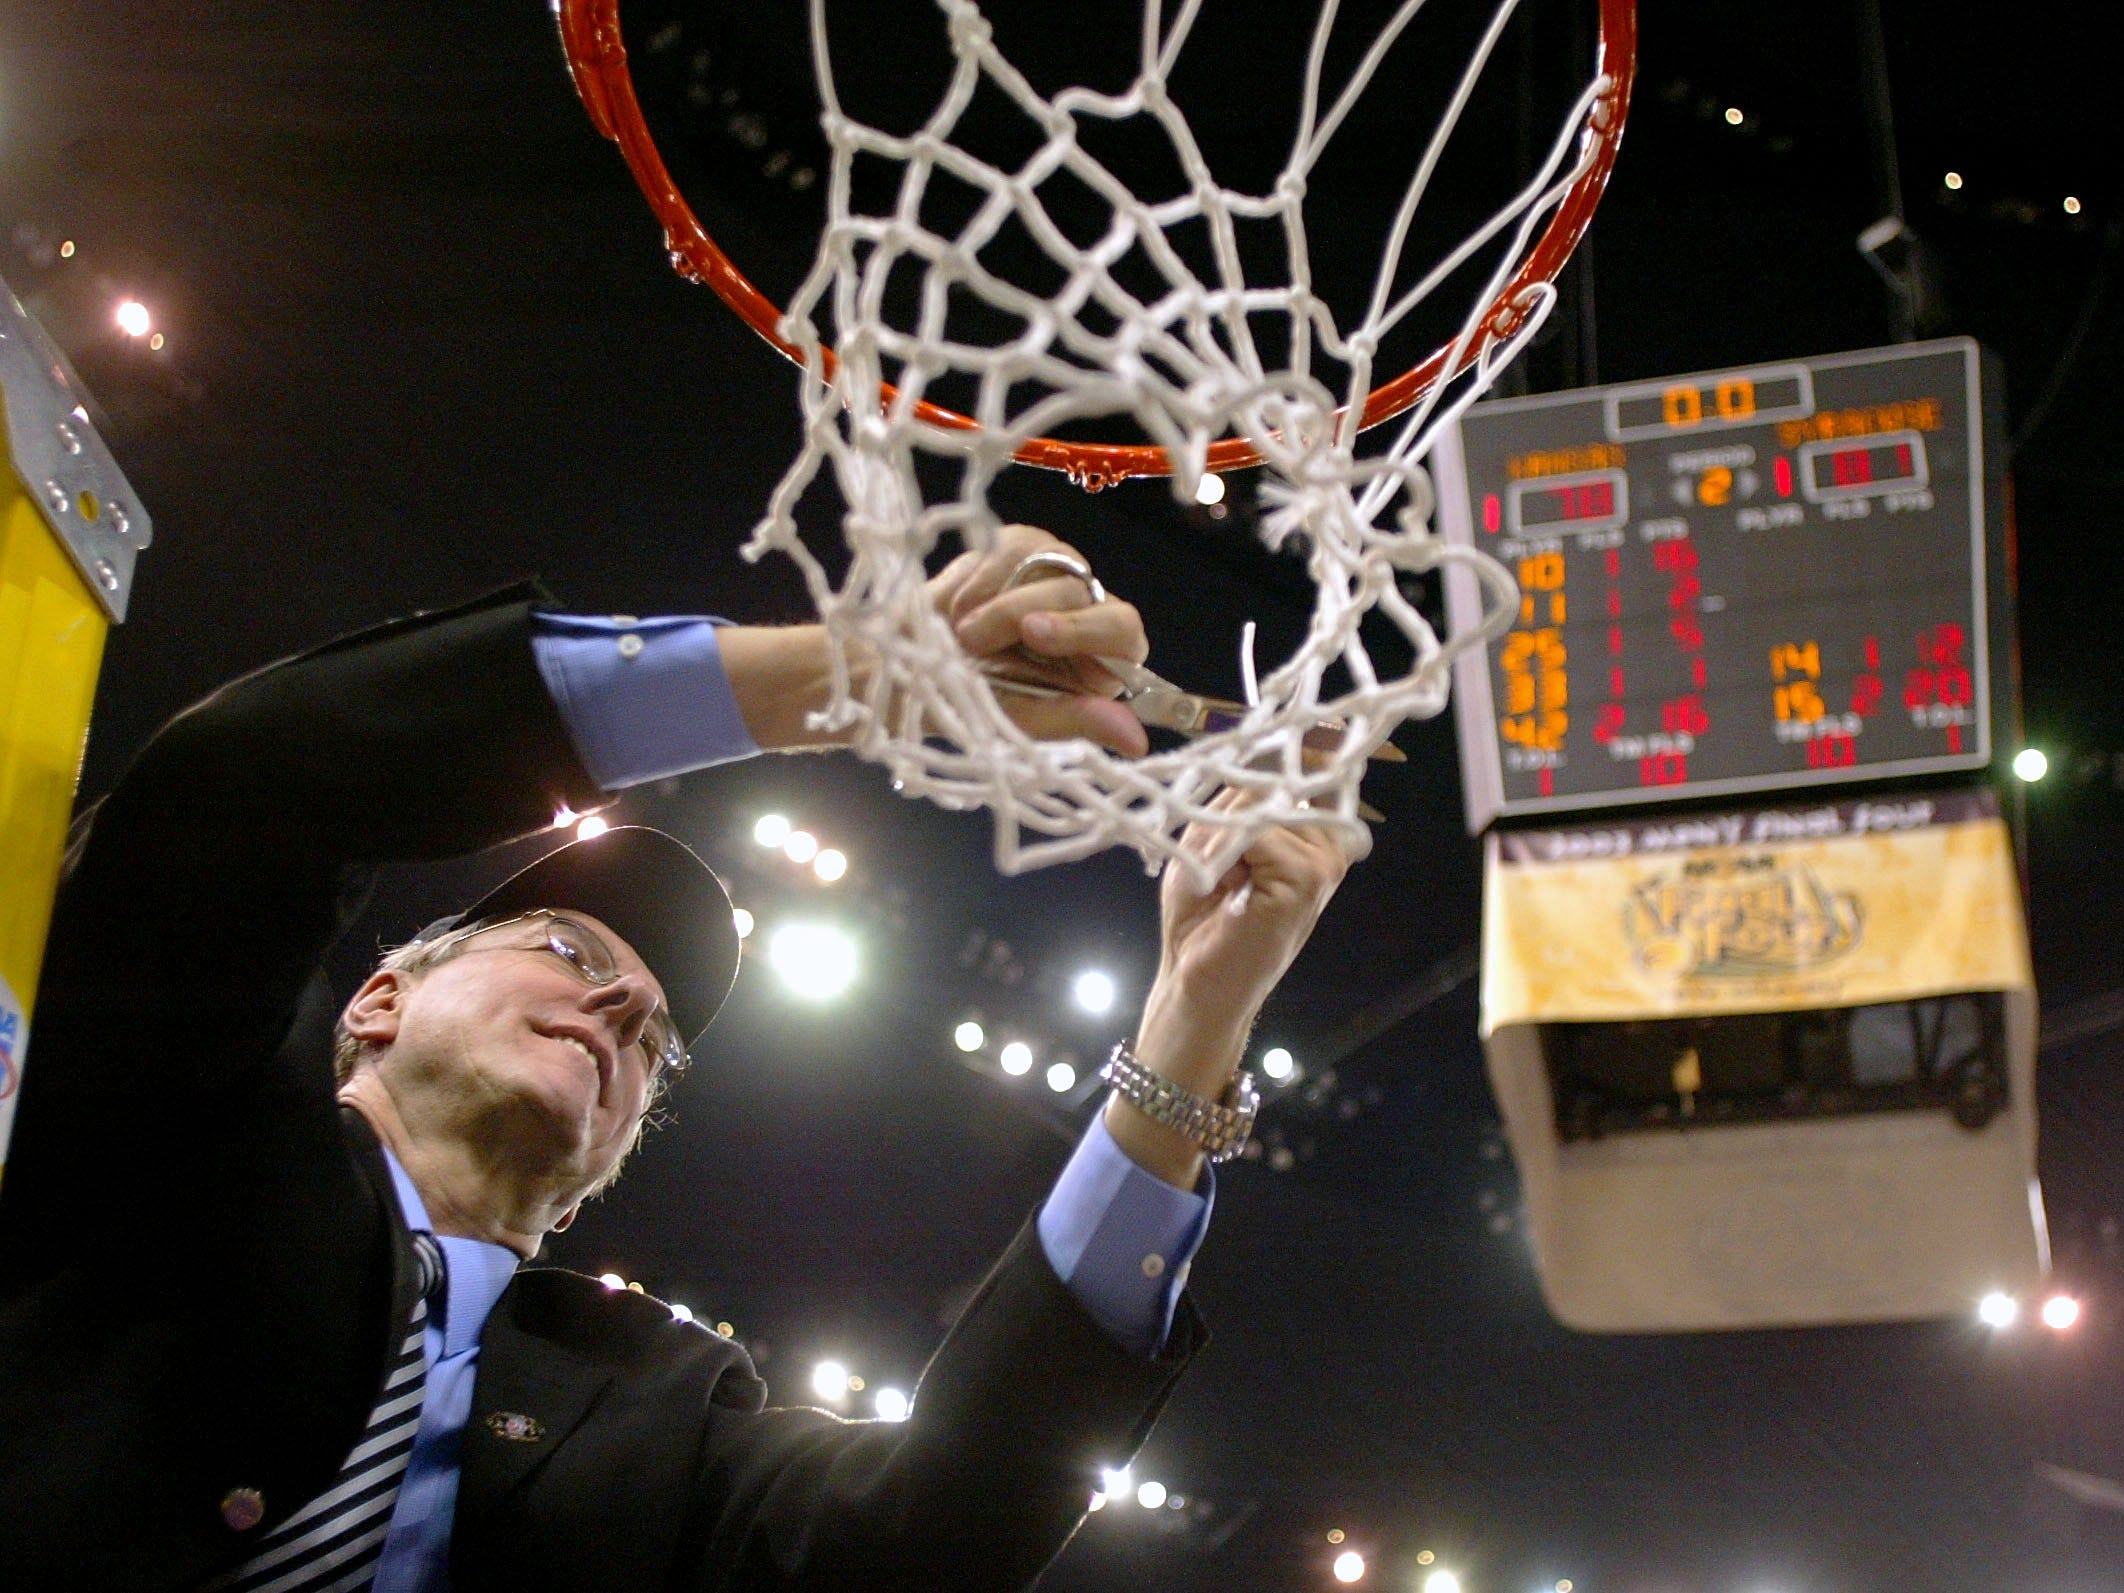 2003: Head coach Jim Boeheim of Syracuse cuts down the net after he and his team defeated Kansas 81-78 during the championship game of the NCAA Men's Final Four Tournament on April 7, 2003 at the Louisiana Superdome in New Orleans, Louisiana.  (Photo by Craig Jones/Getty Images)